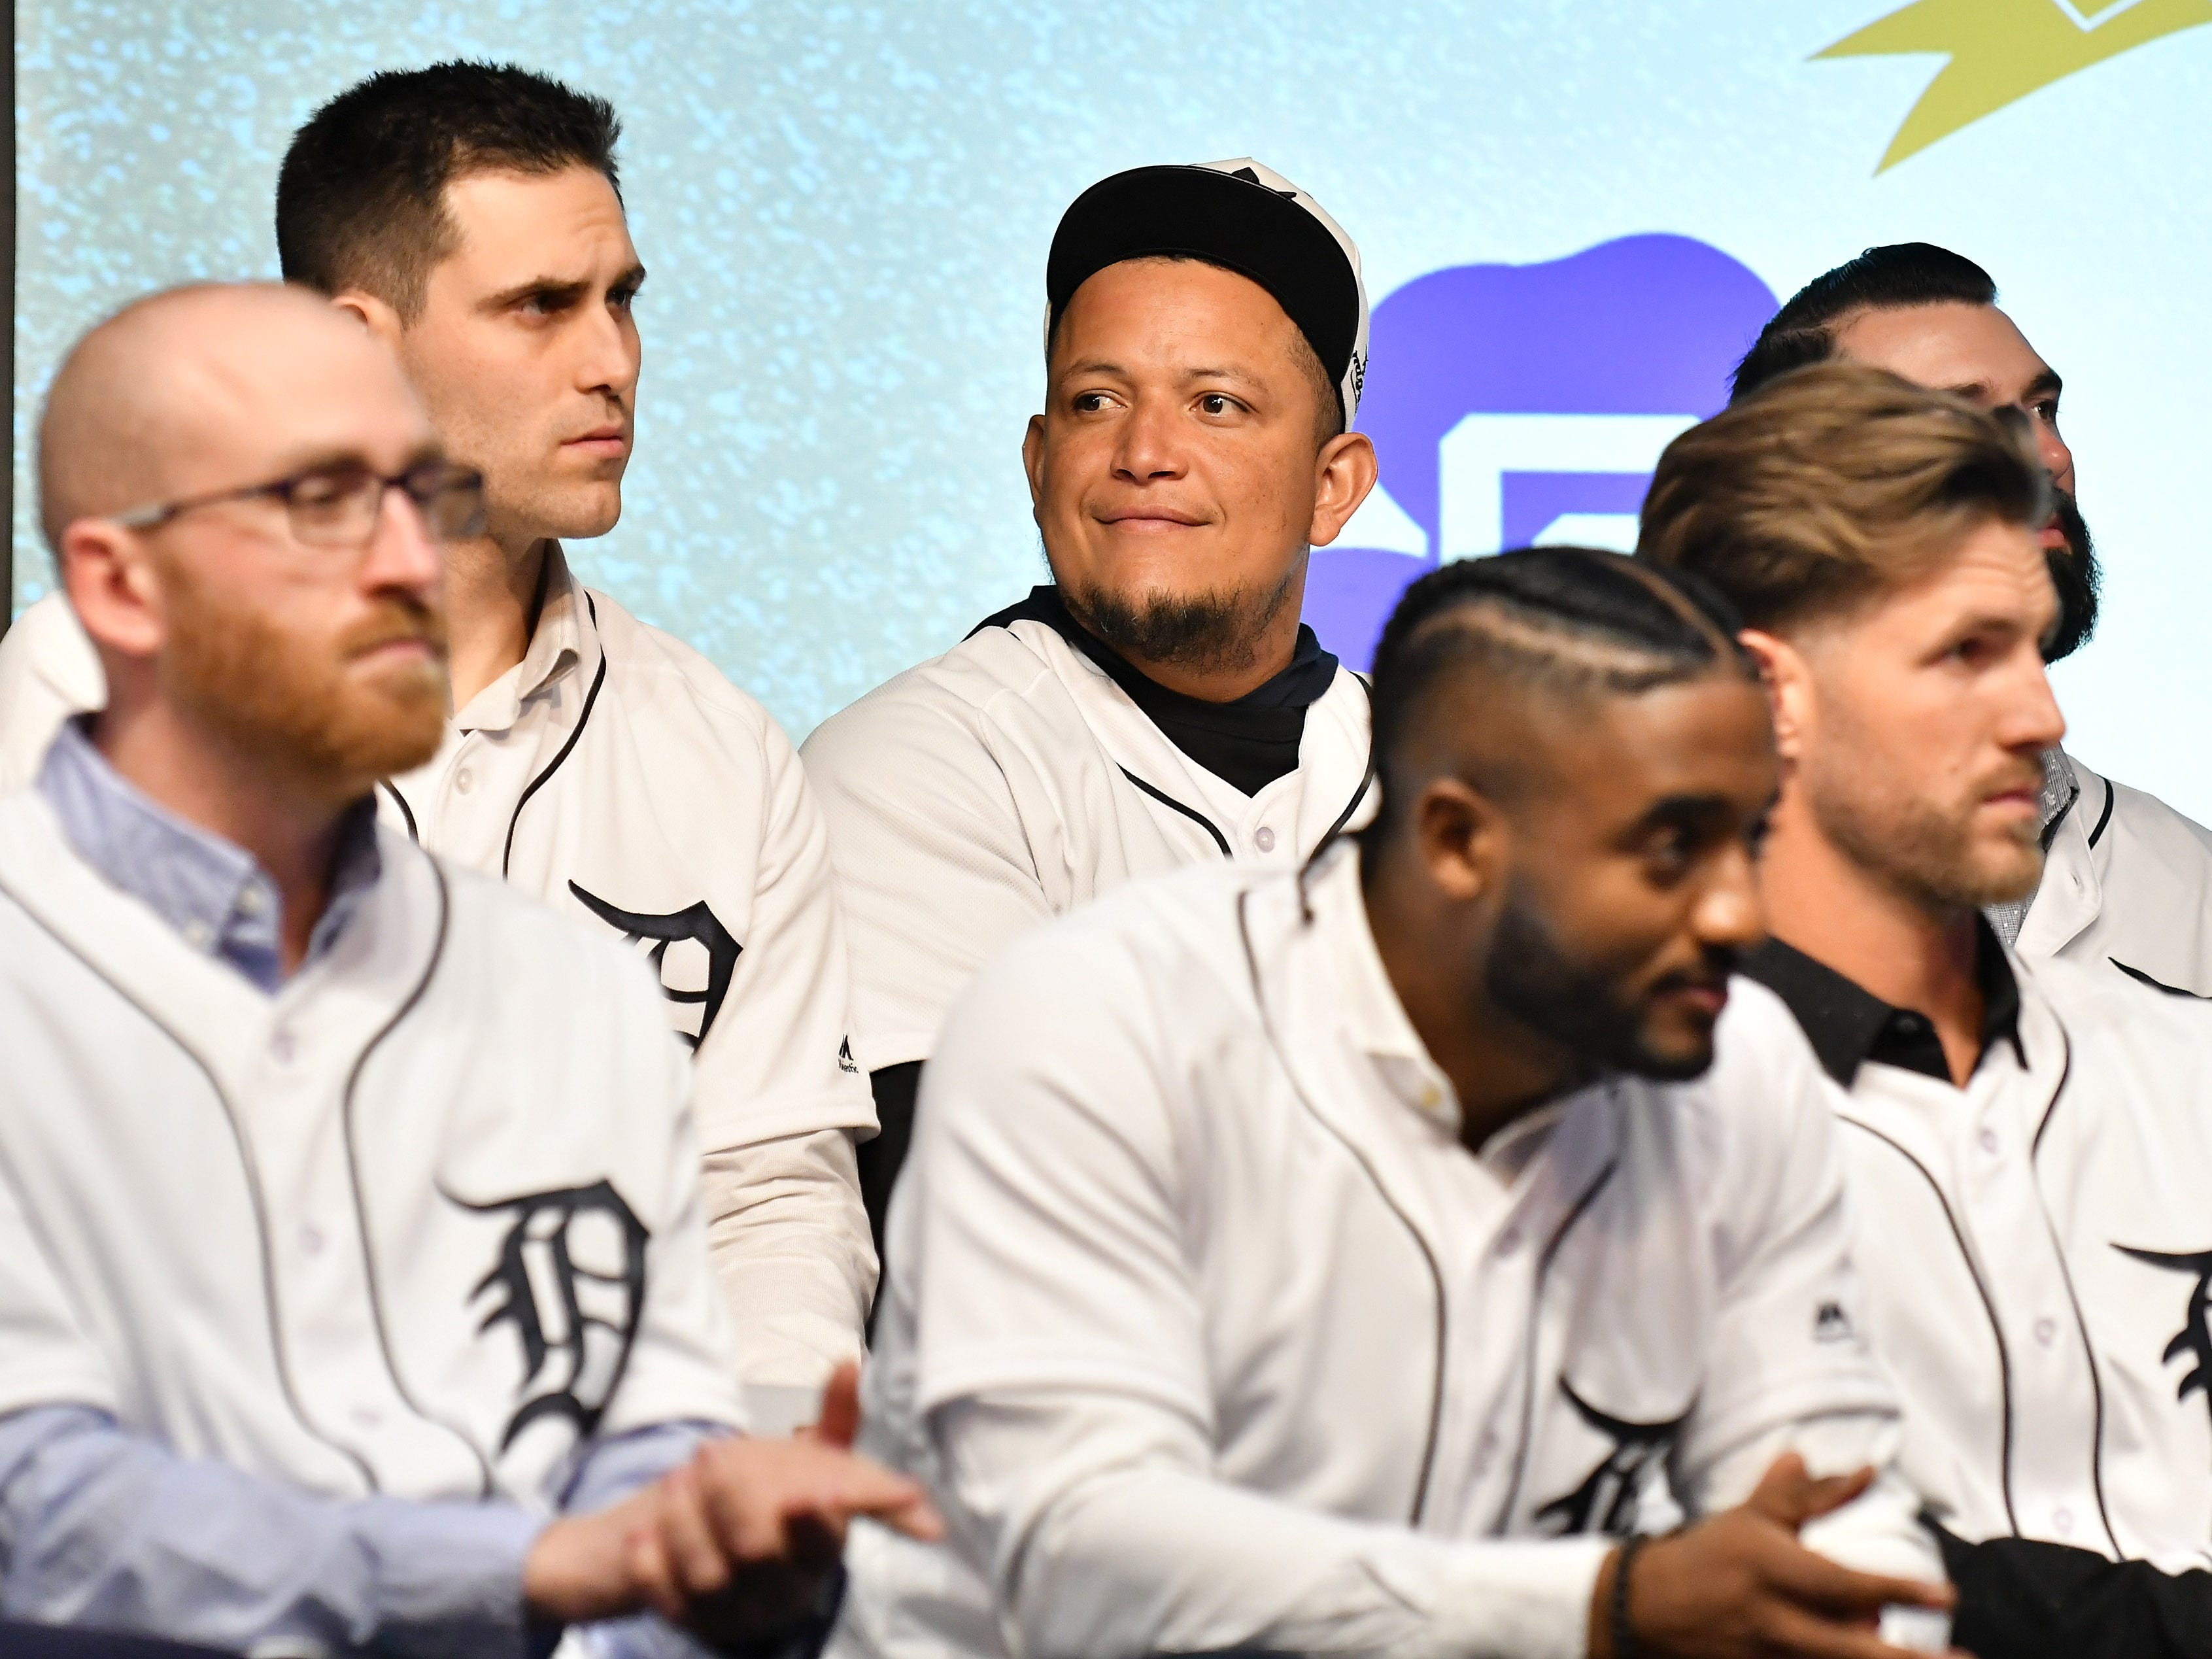 Tigers' Miguel Cabrera with pitcher Matthew Boyd, left, during a stop on the 2019 Detroit Tigers Winter Caravan at the Novi Civic Center in Novi, Mich. on Jan. 24, 2019.